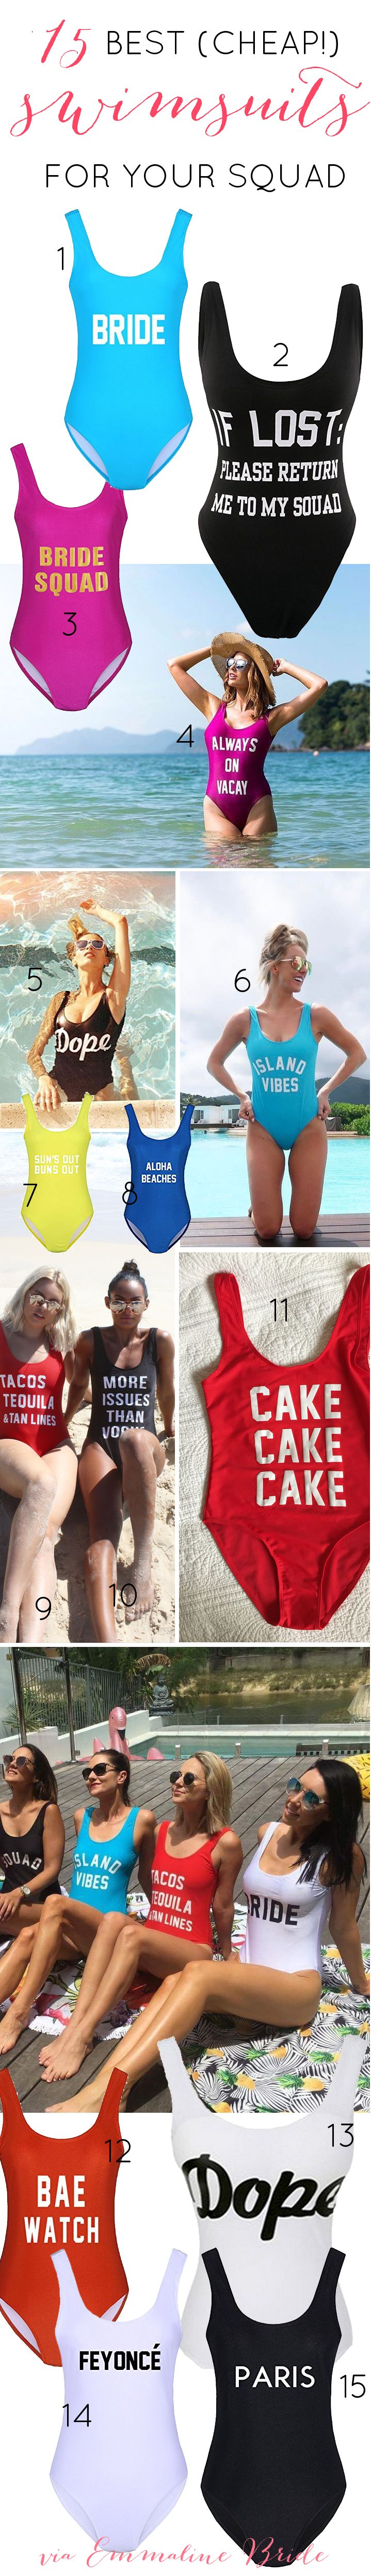 15 Best (+Cheap!) One Piece Swimsuits for your Squad | Great for your bachelorette party!